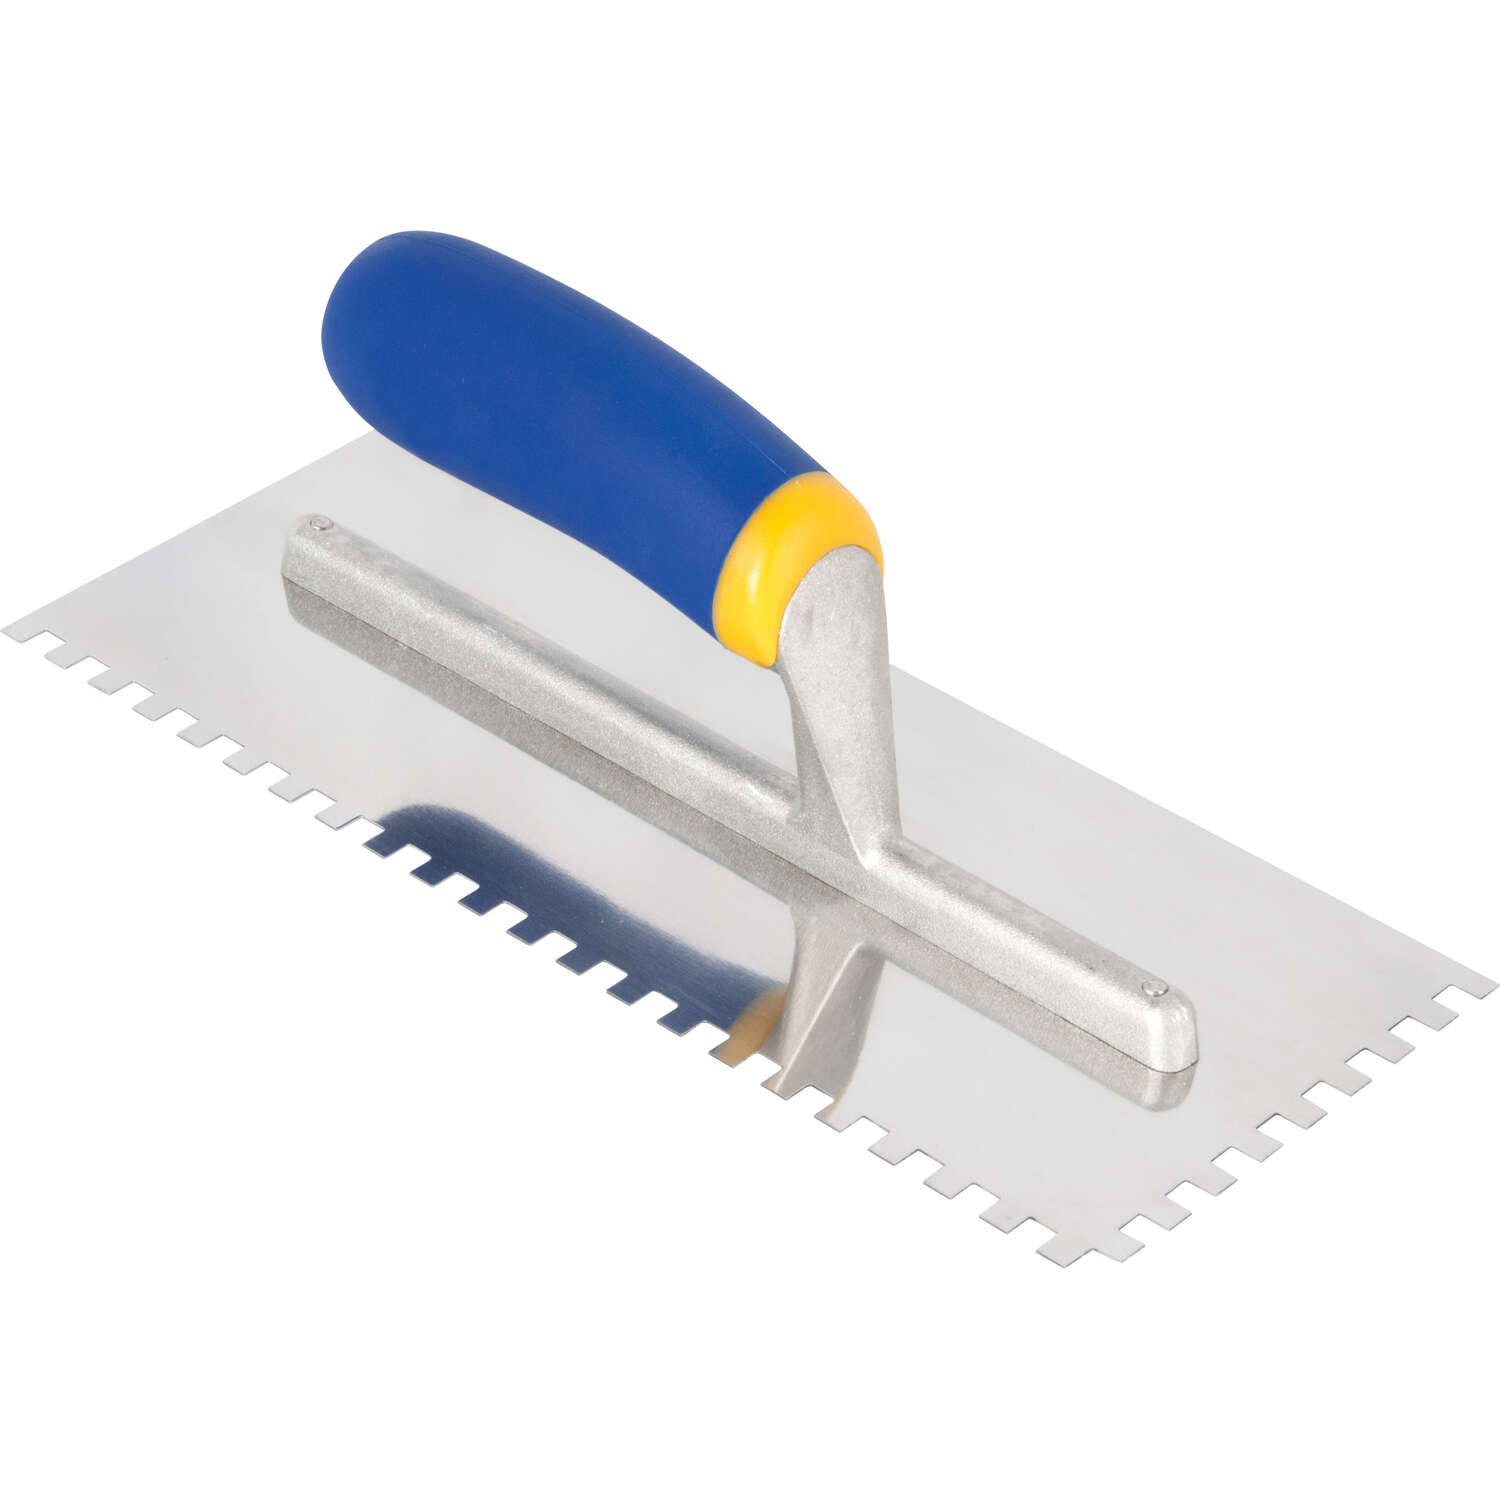 QEP  11 in. W Stainless Steel  Square Notch Trowel